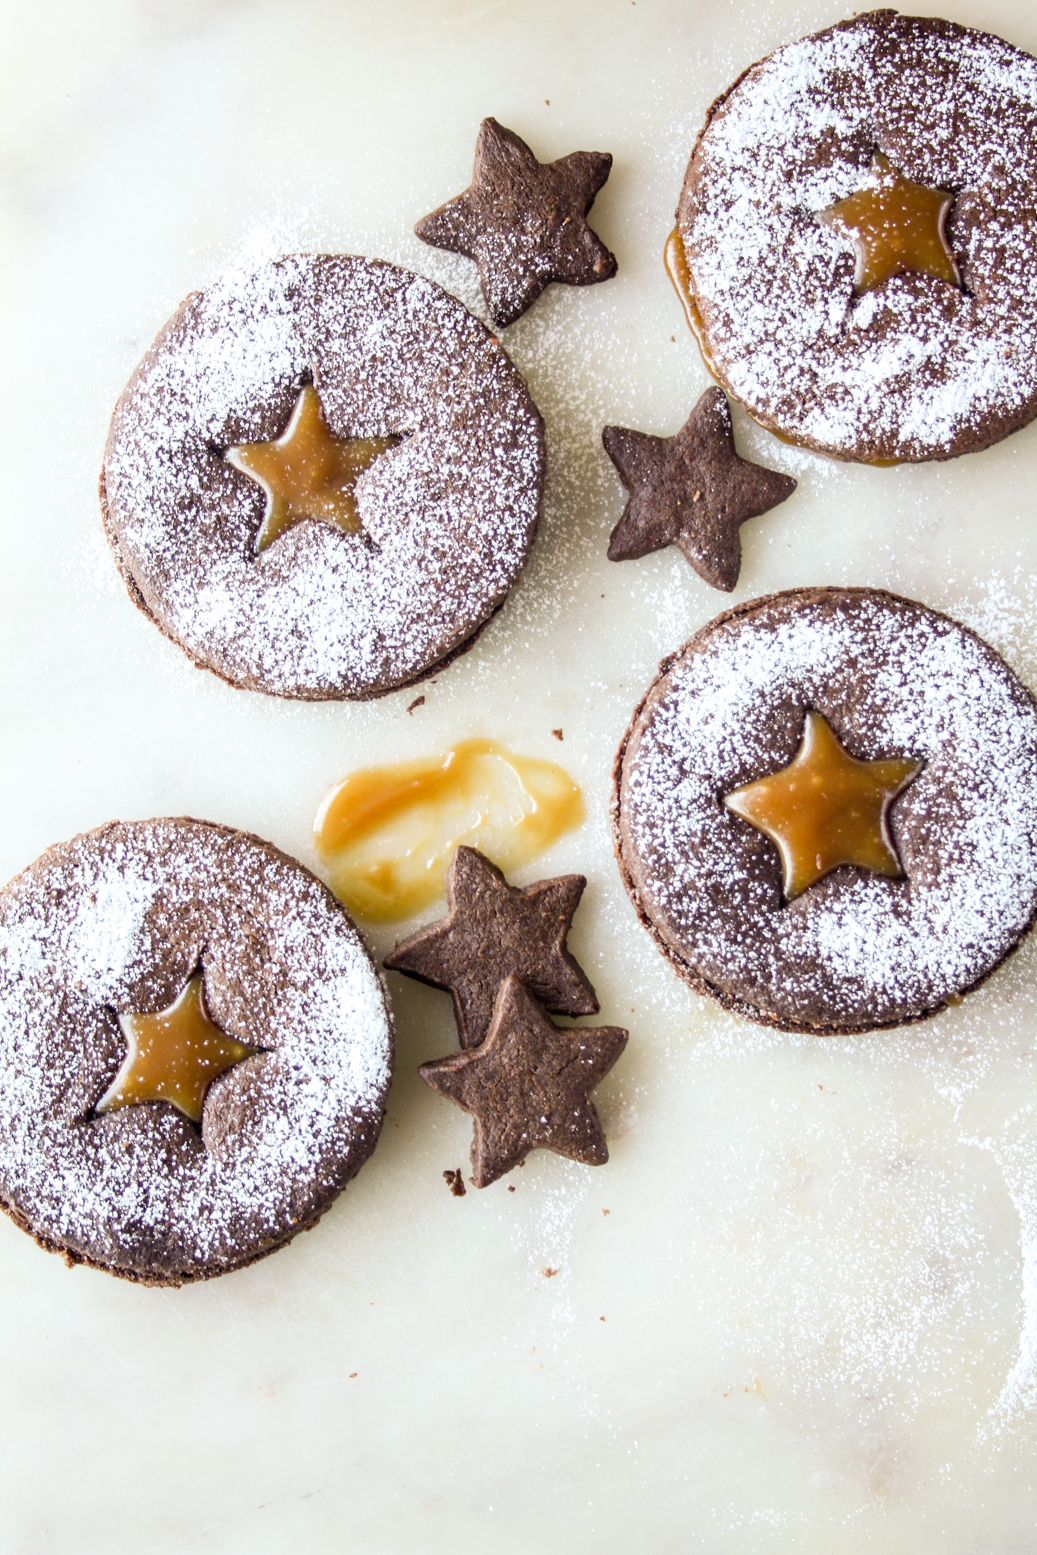 Crisp chocolate cookies with a salted caramel filling